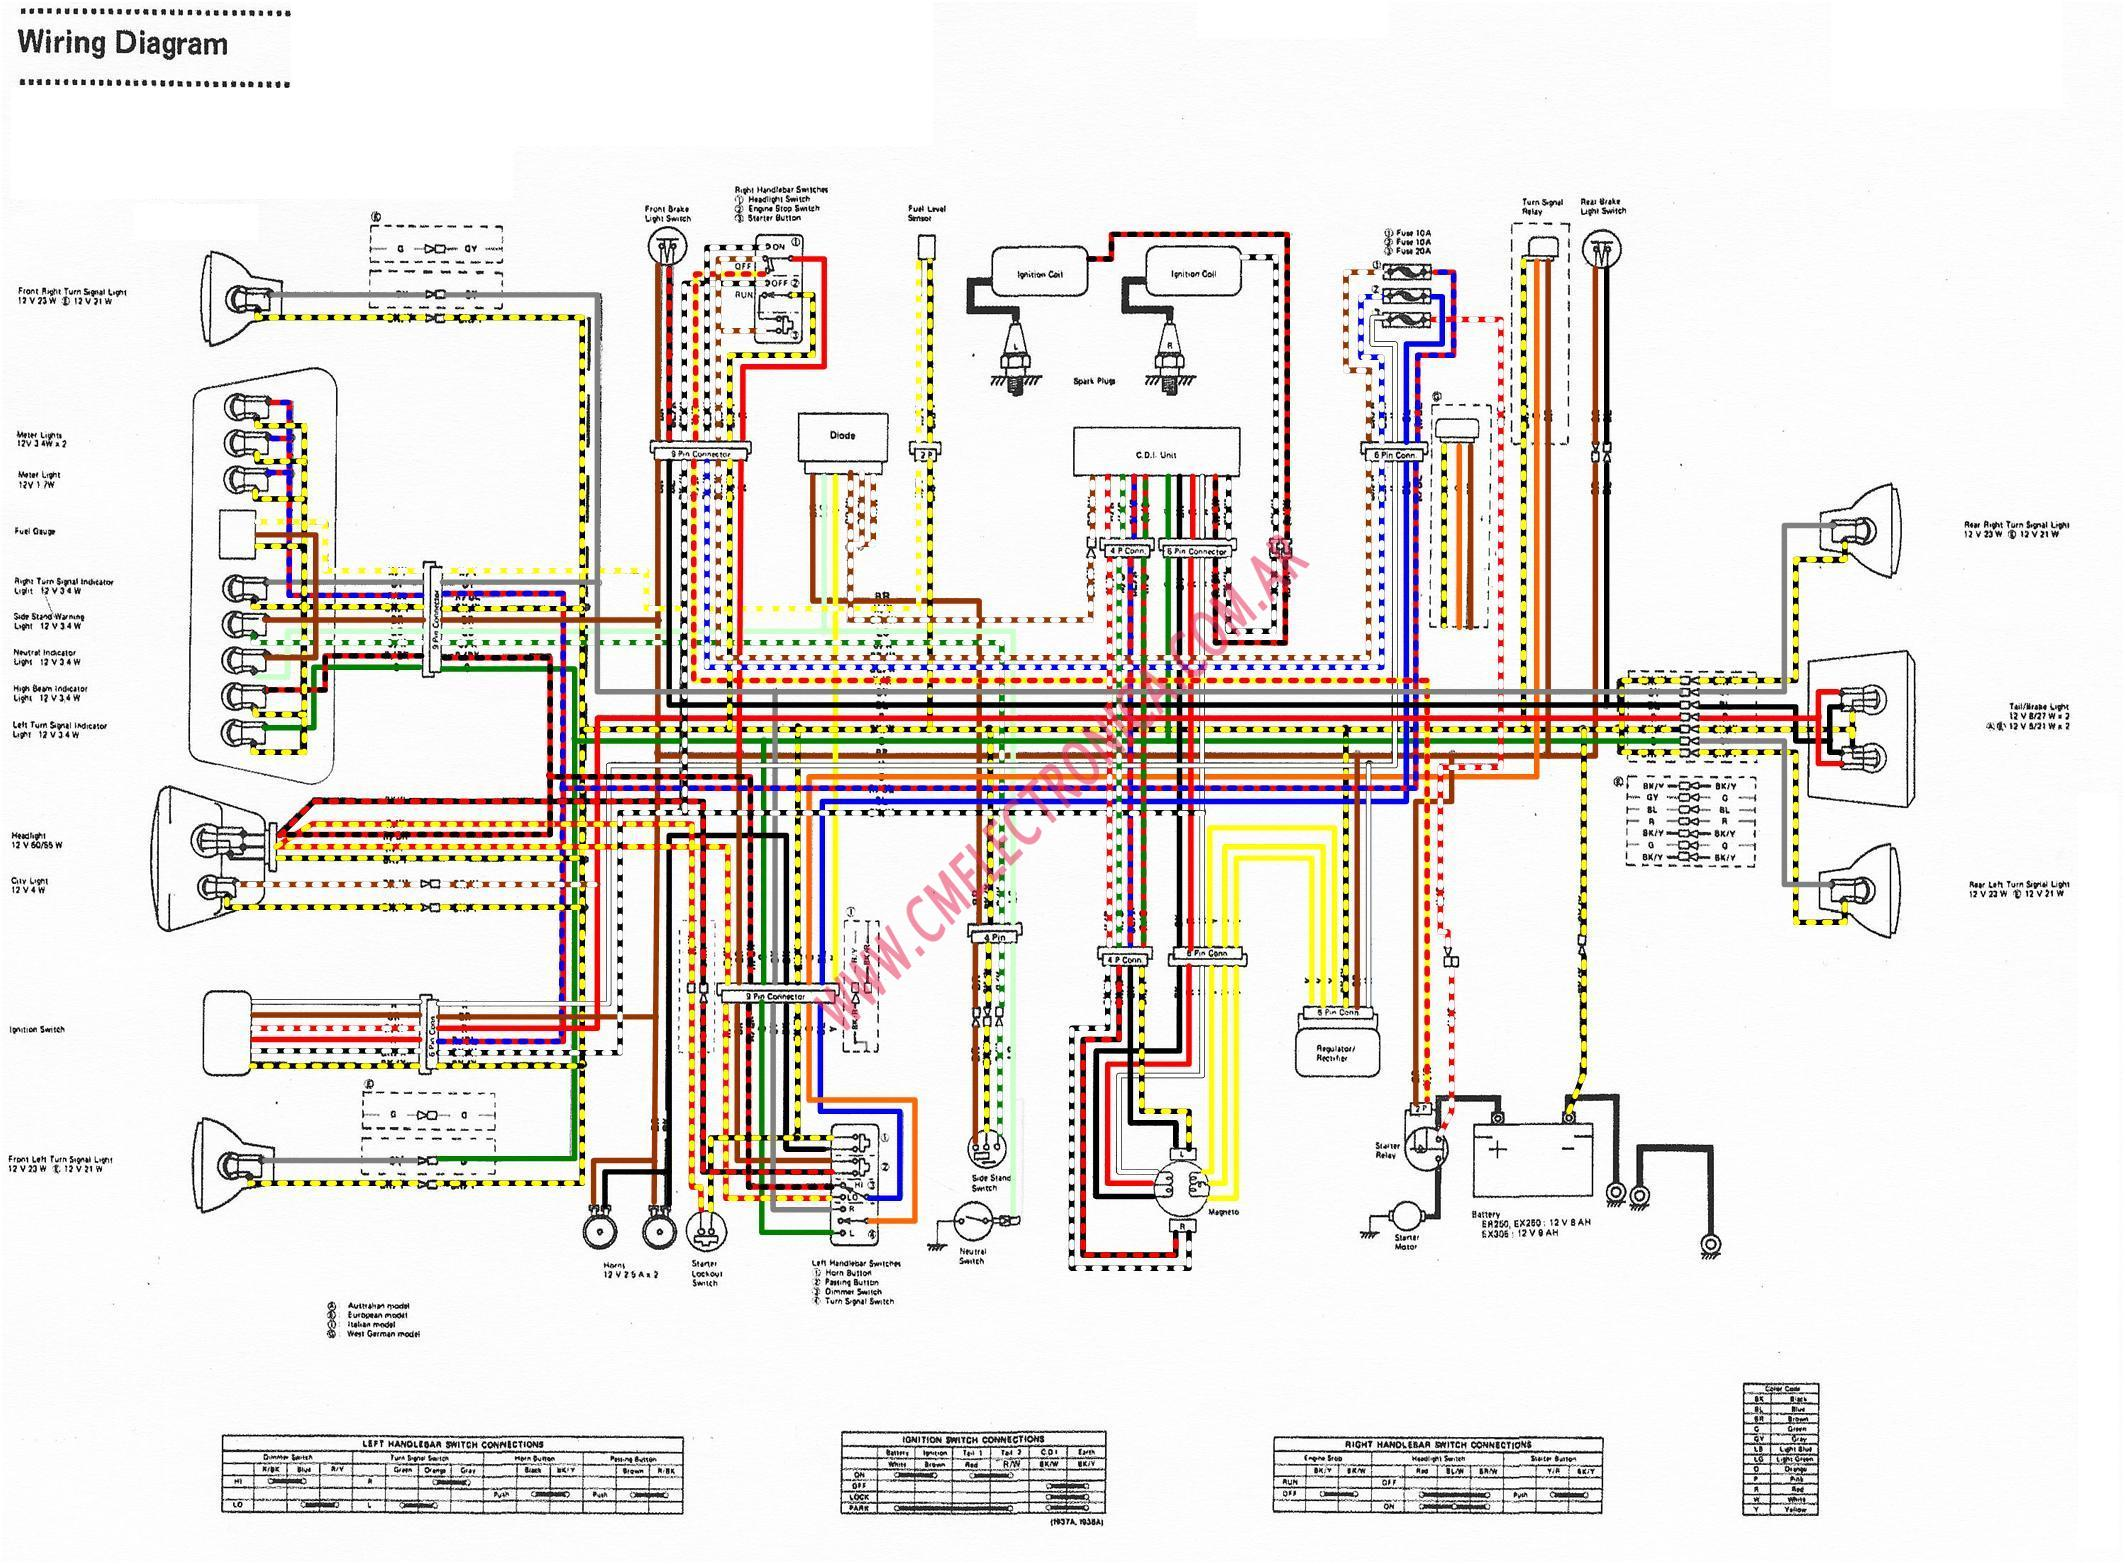 [DIAGRAM_5LK]  Ninja 250 Wiring Diagram -65 Corvette Radio Wiring | Begeboy Wiring Diagram  Source | Ninja 250 Wiring Diagram |  | Begeboy Wiring Diagram Source